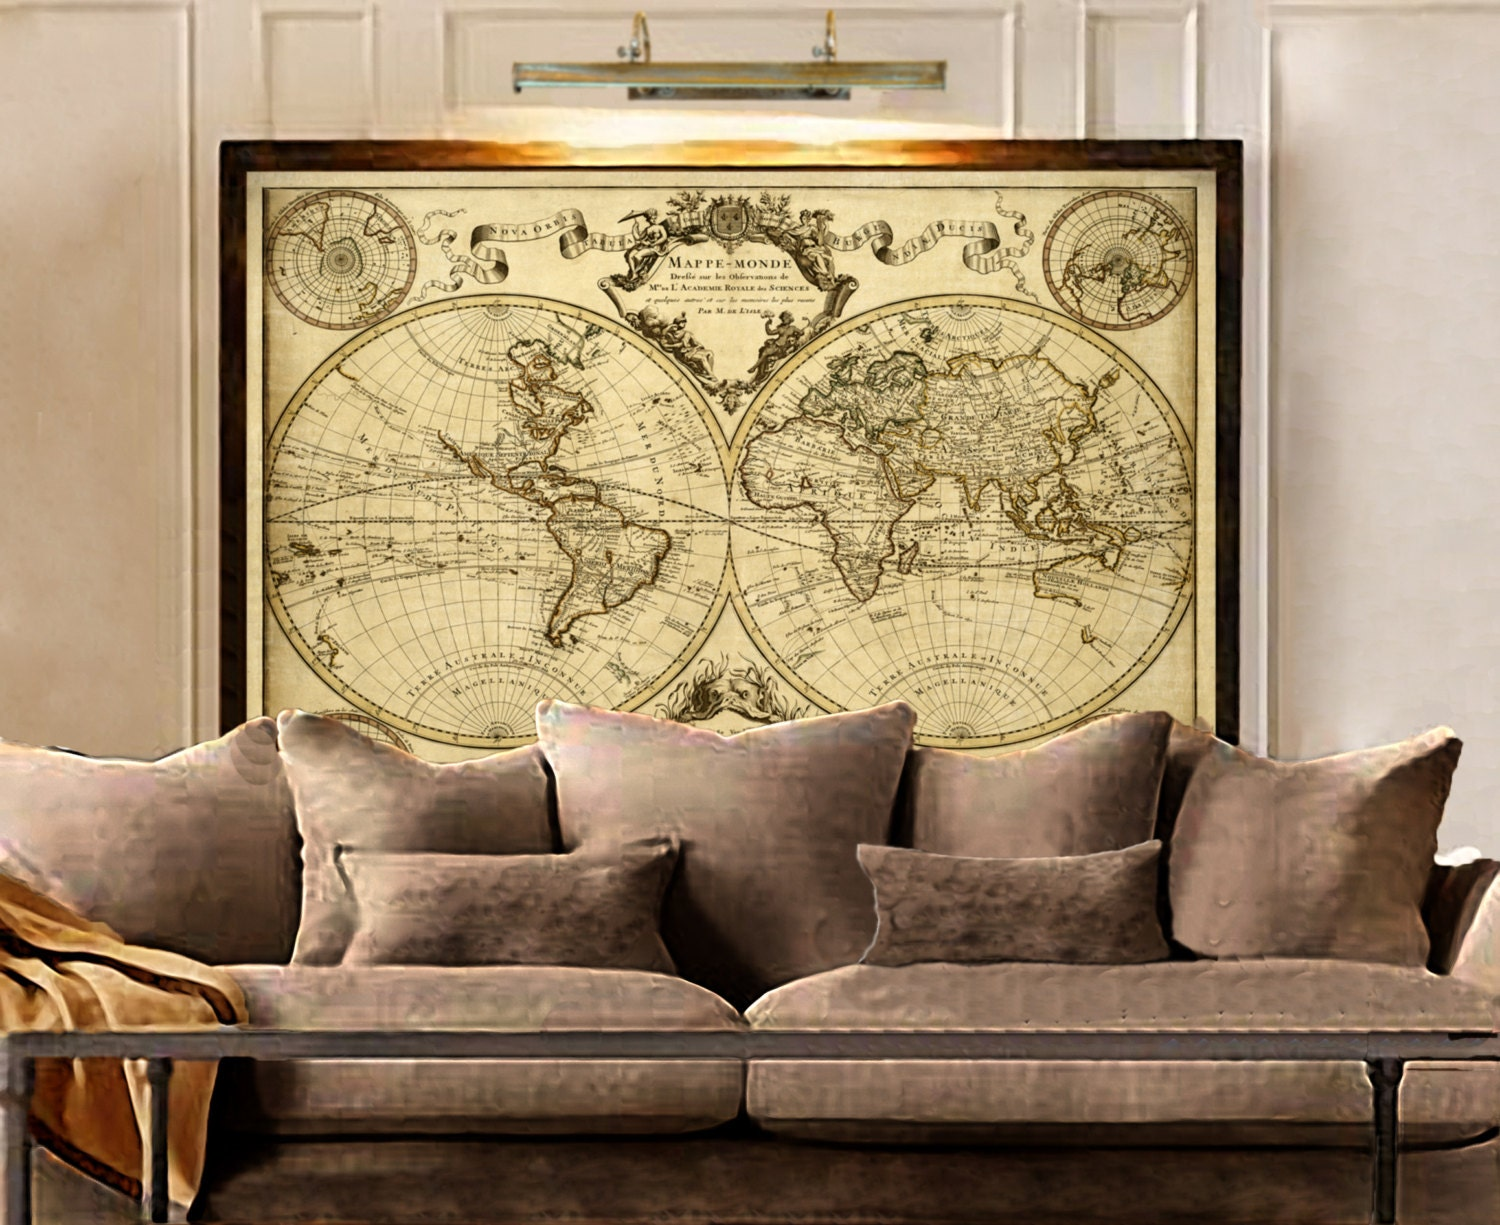 1720 old world map map art historic map antique style world zoom gumiabroncs